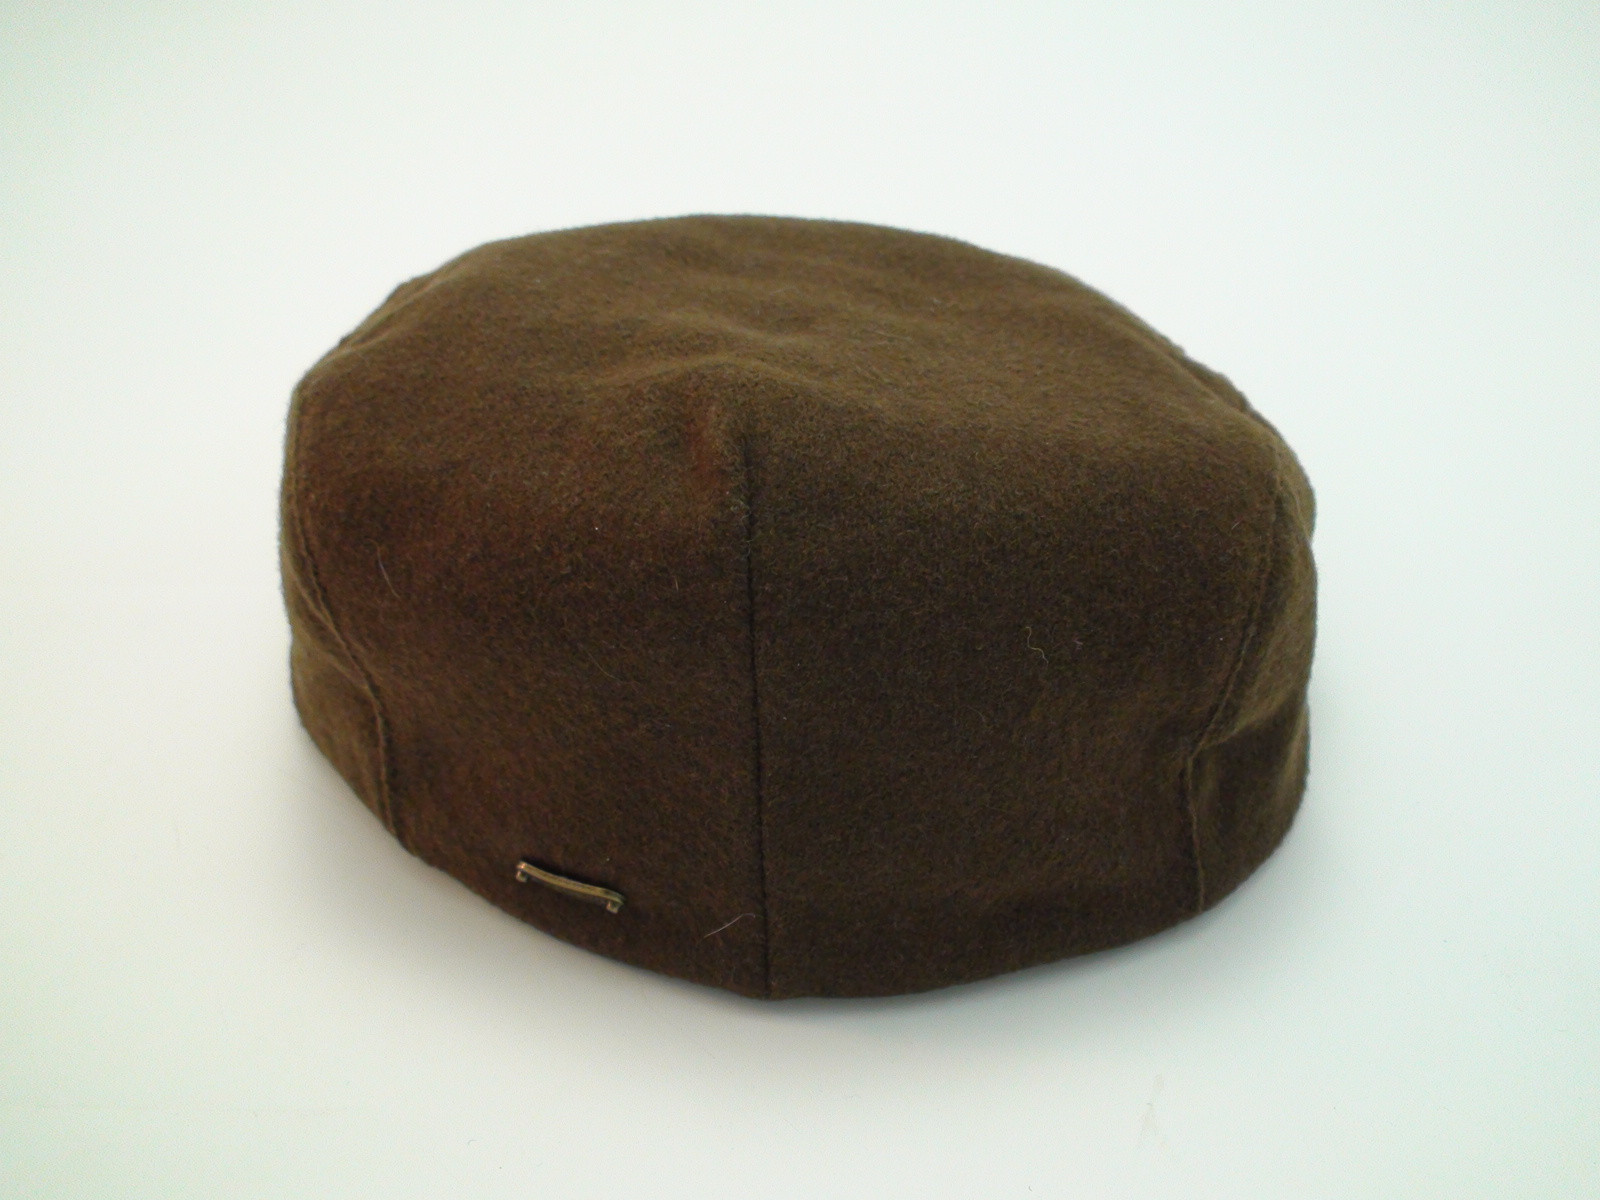 Hat with Ear Flaps Awesome Stetson Ivy Newsboy Flat Cap Chocolate Brown with Ear Flaps Of Top 42 Photos Hat with Ear Flaps